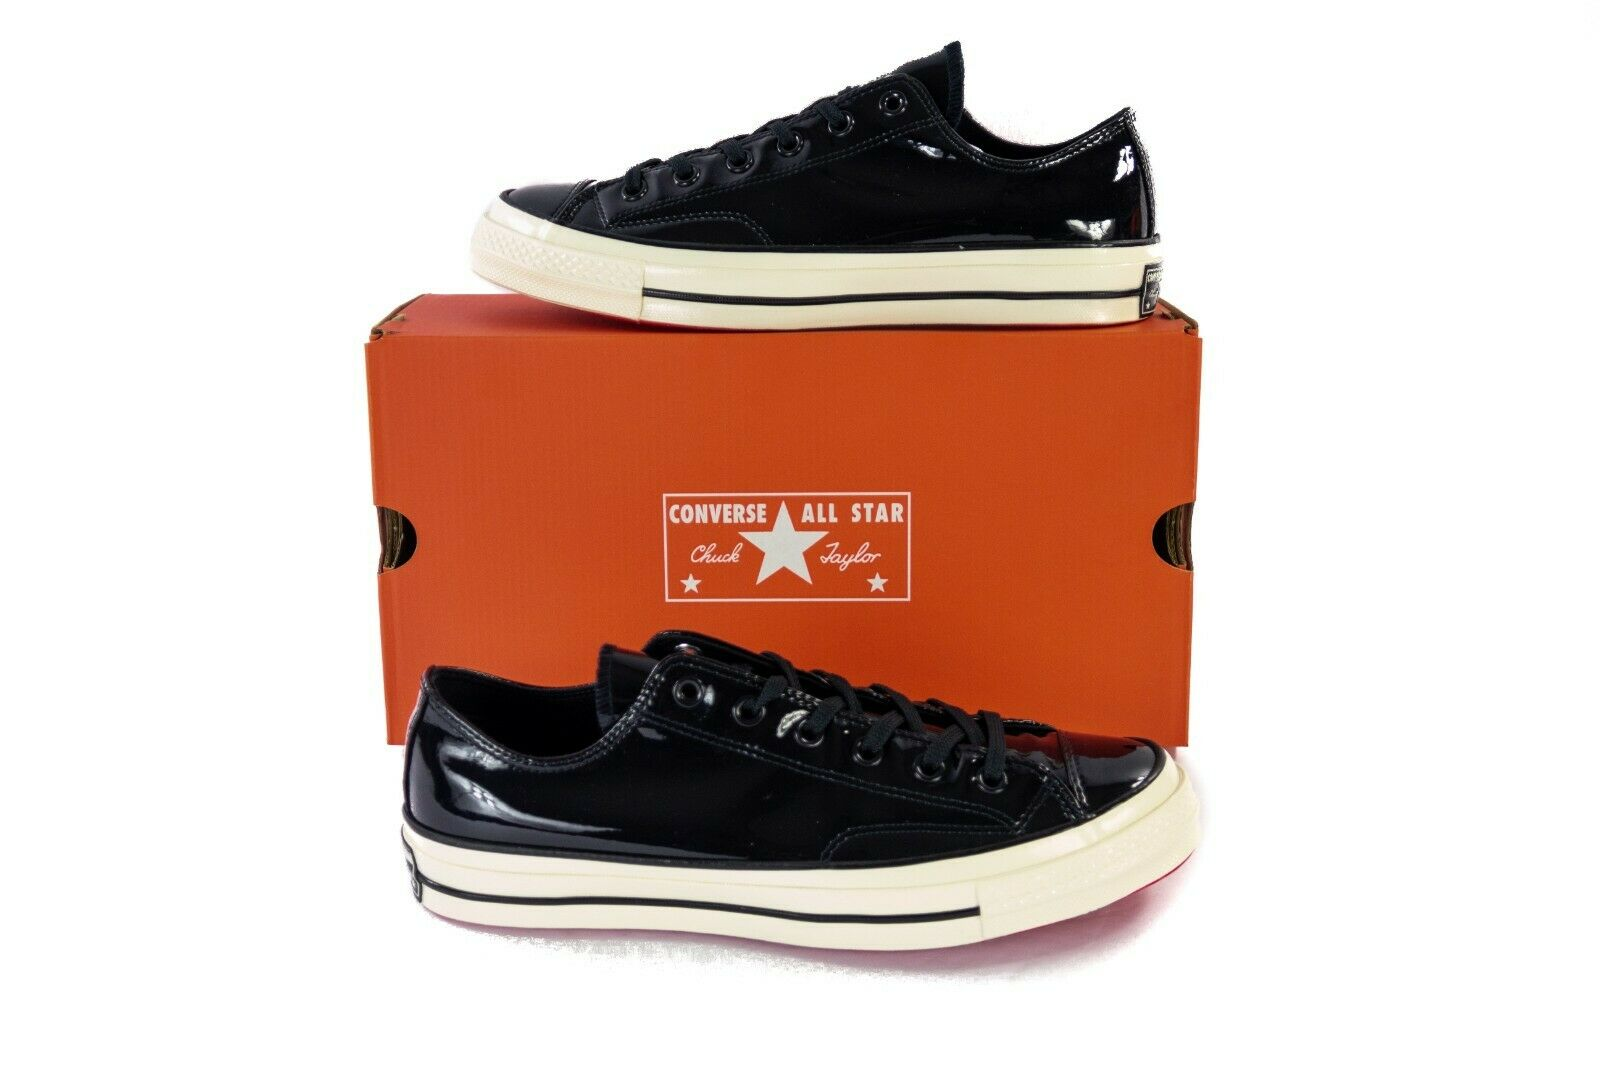 Converse Converse Converse Chuck Taylor All Star 70 1970s Patent Leather nero Low scarpe 162438C 045173